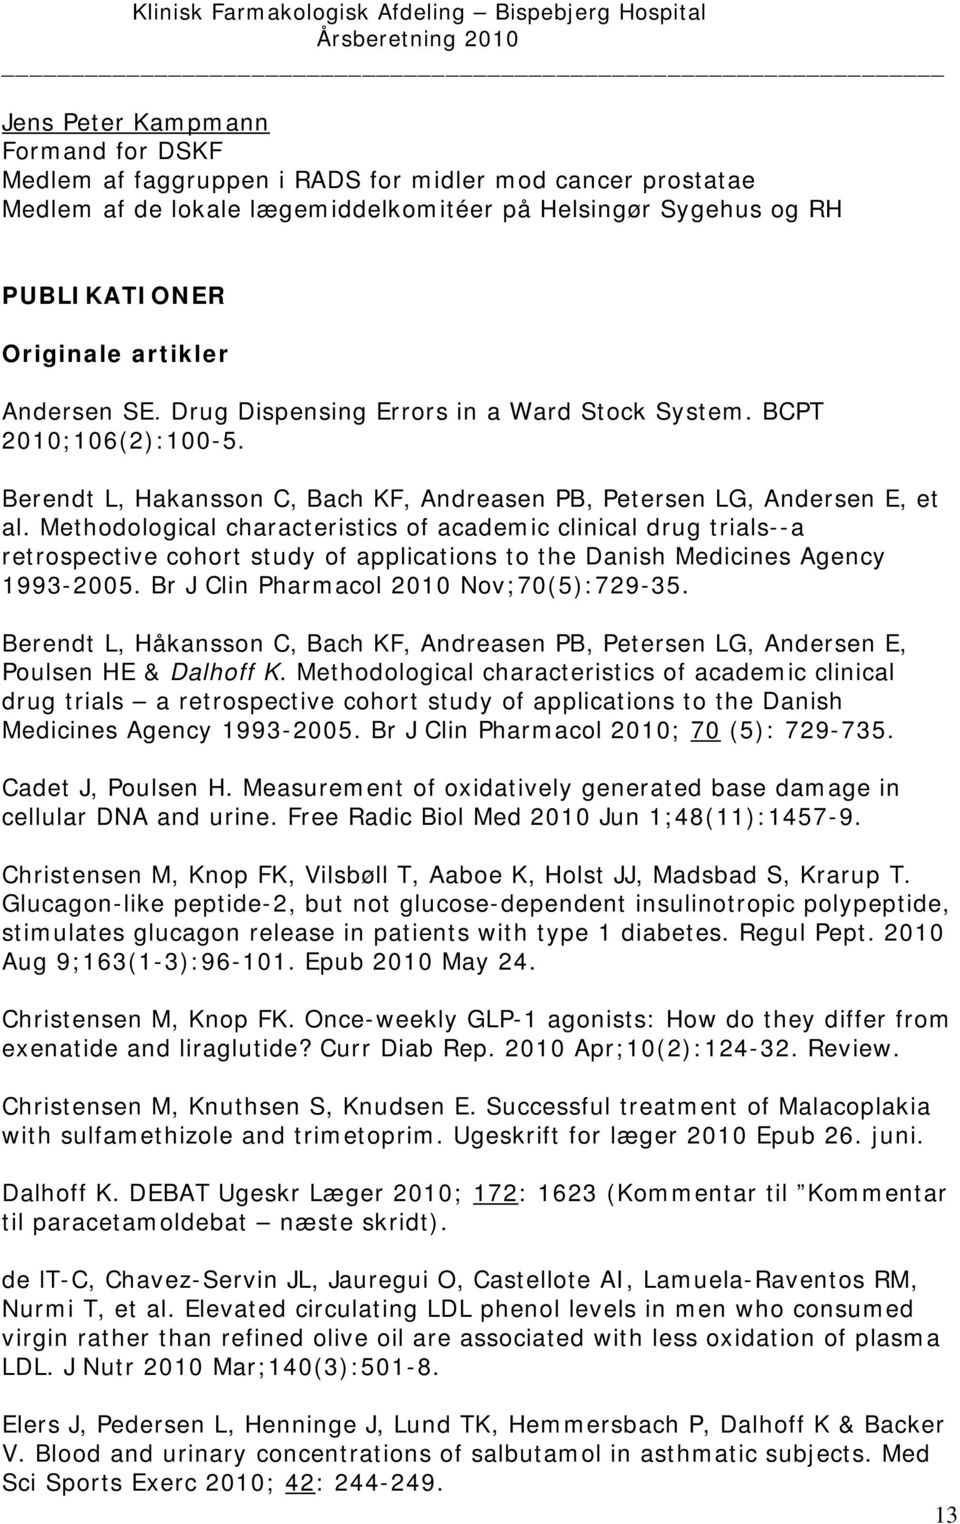 Methodological characteristics of academic clinical drug trials--a retrospective cohort study of applications to the Danish Medicines Agency 1993-2005. Br J Clin Pharmacol 2010 Nov;70(5):729-35.